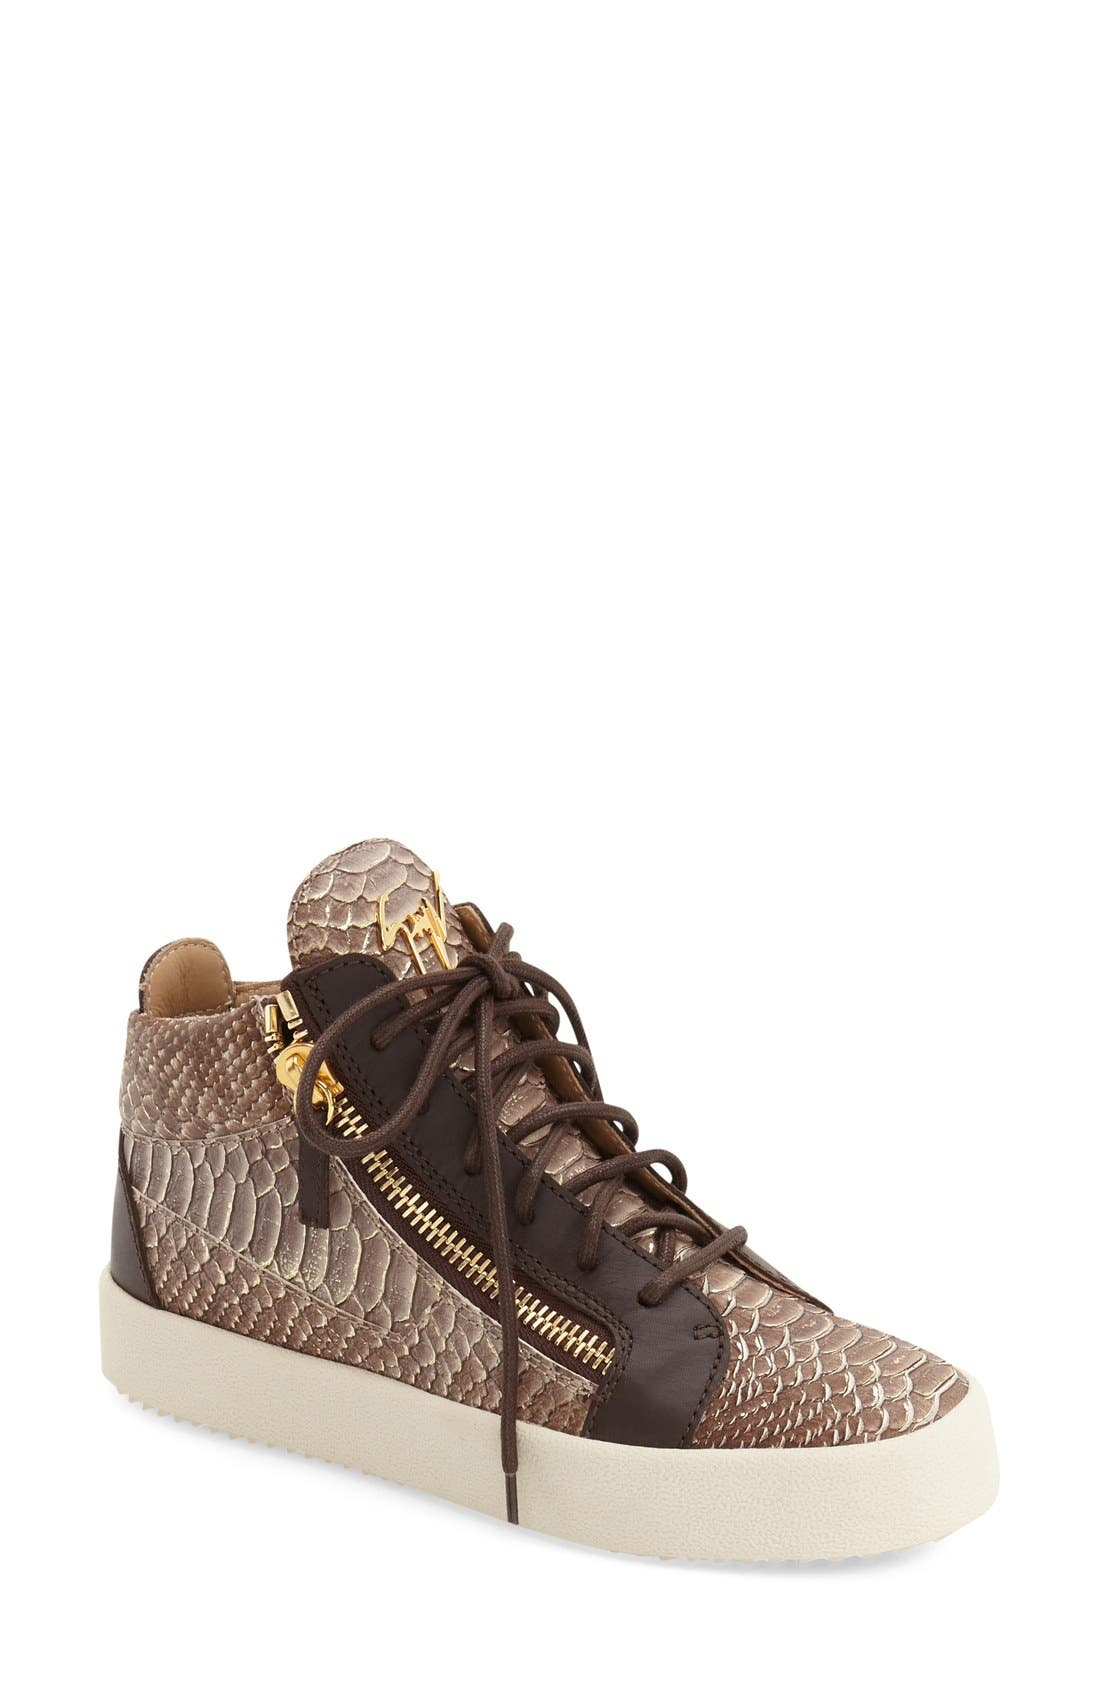 GIUSEPPE ZANOTTI 'May London' High Top Sneaker